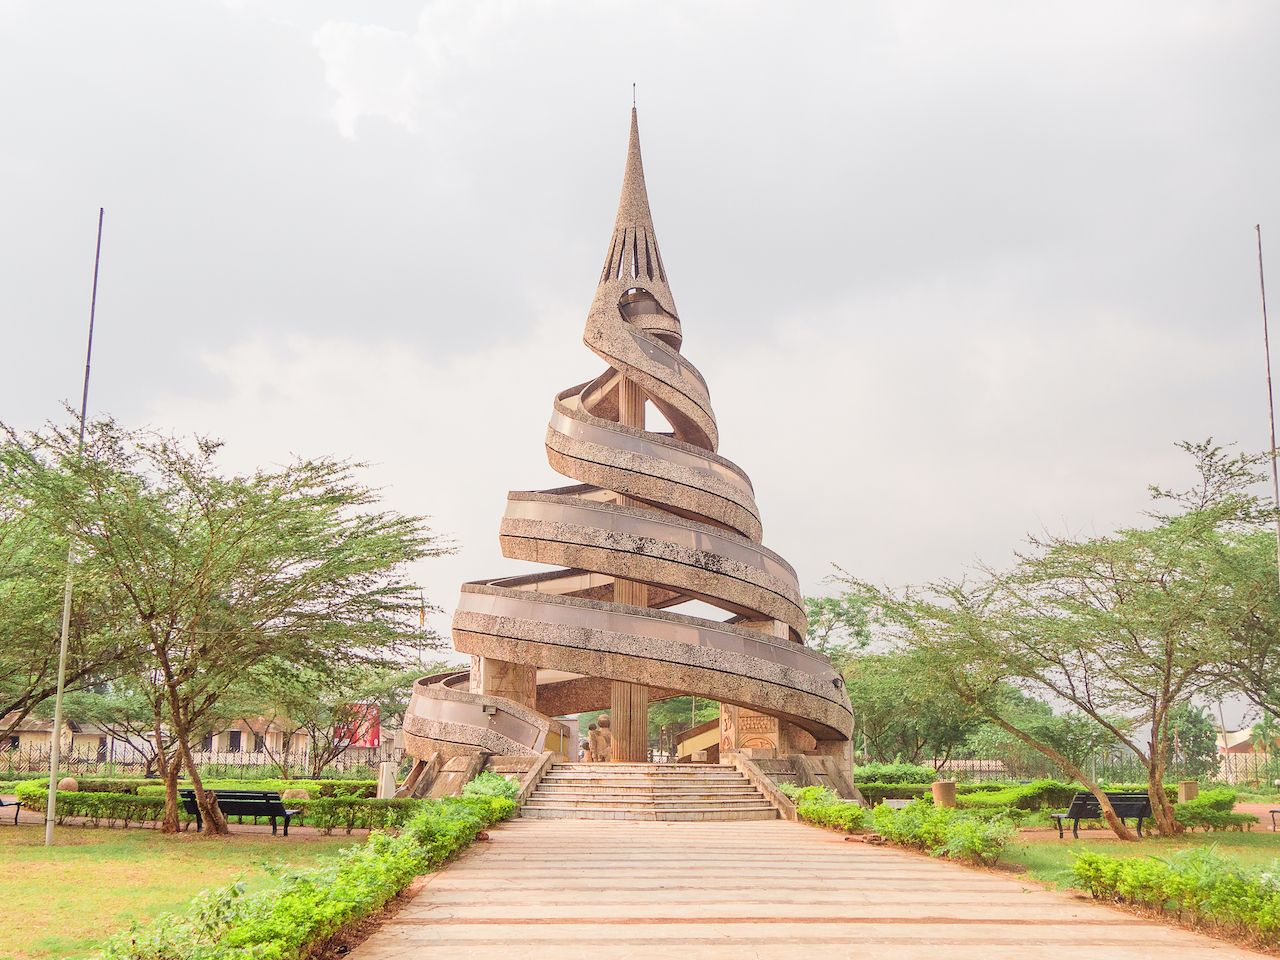 the monument of the reunification of Cameroon in Cameroon